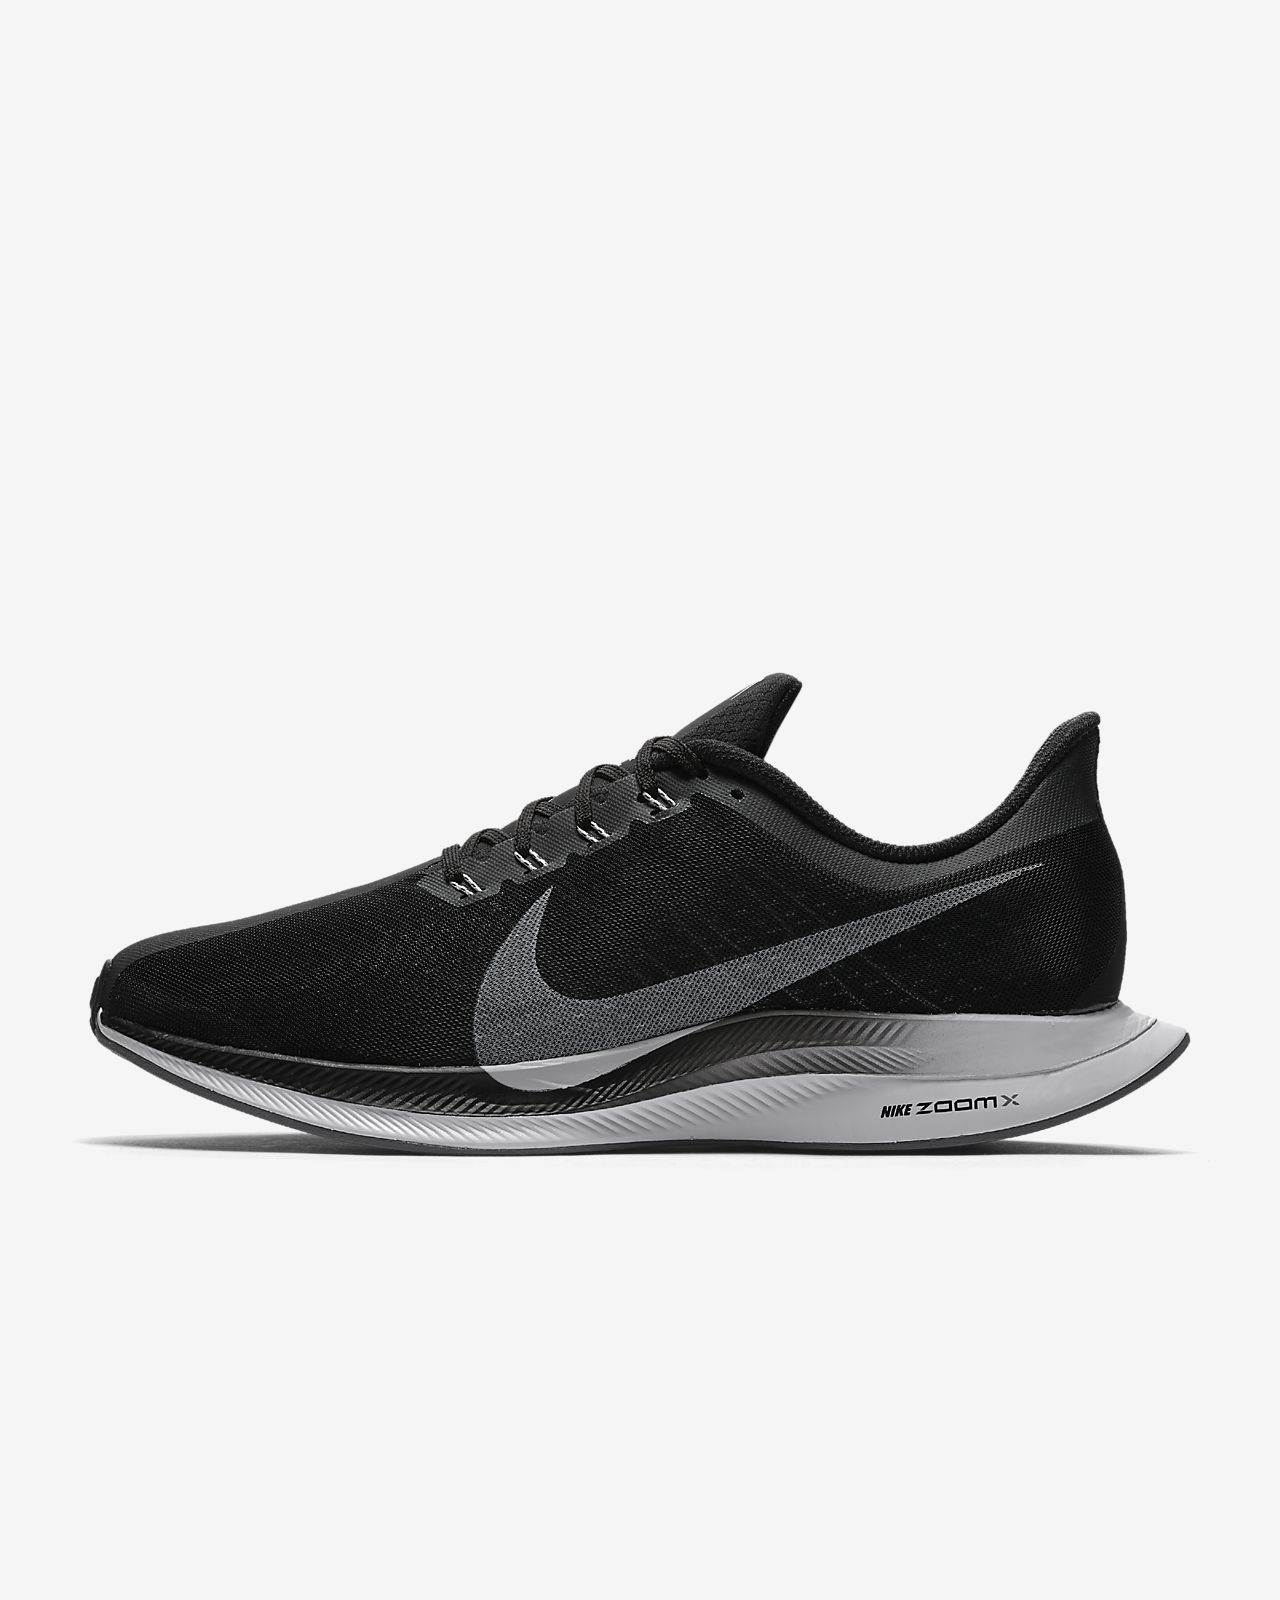 Zoom Nike Running Men's Pegasus Shoe Turbo FKJ3ulc1T